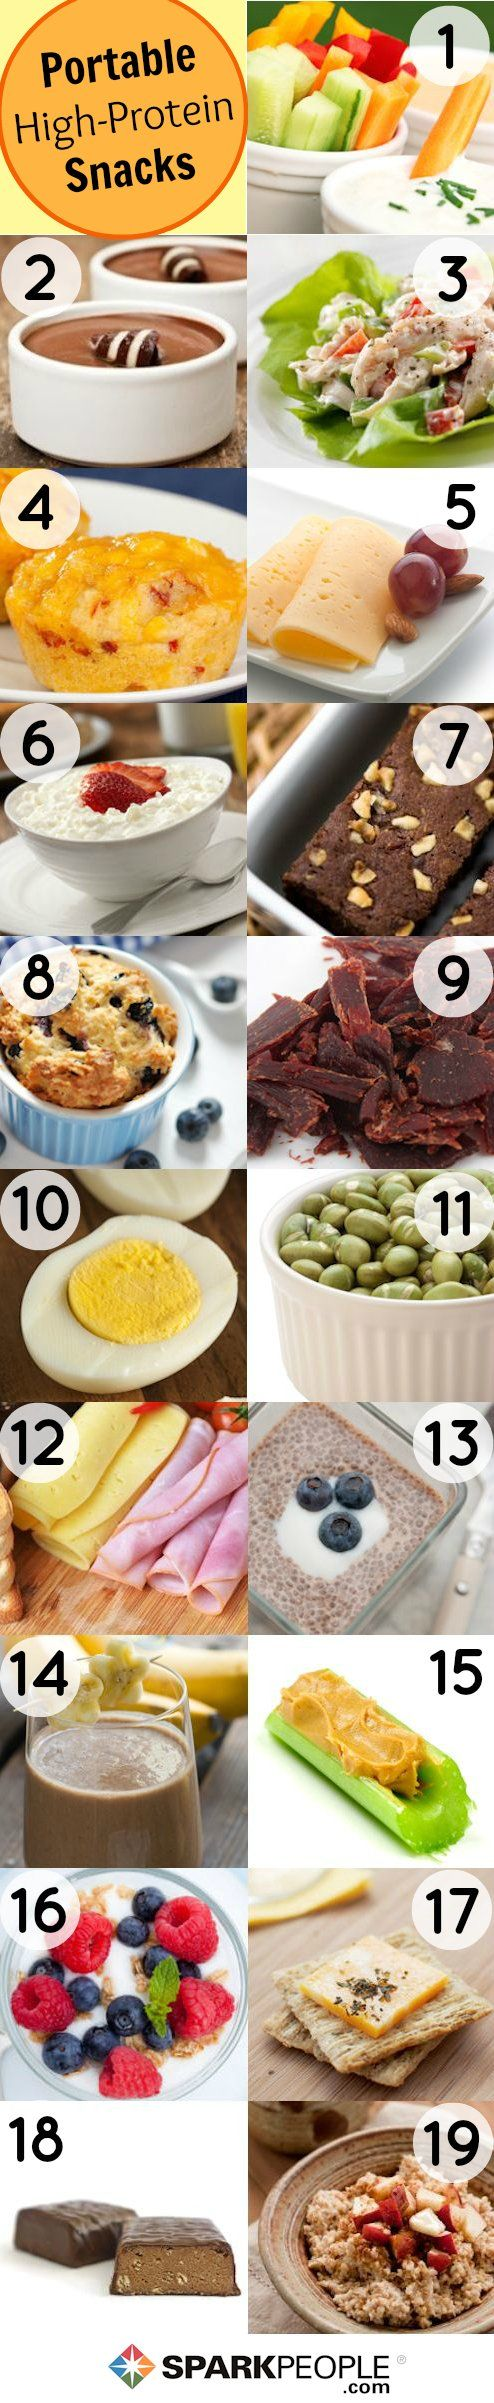 19 Portable Protein-Packed Snacks   via @SparkPeople